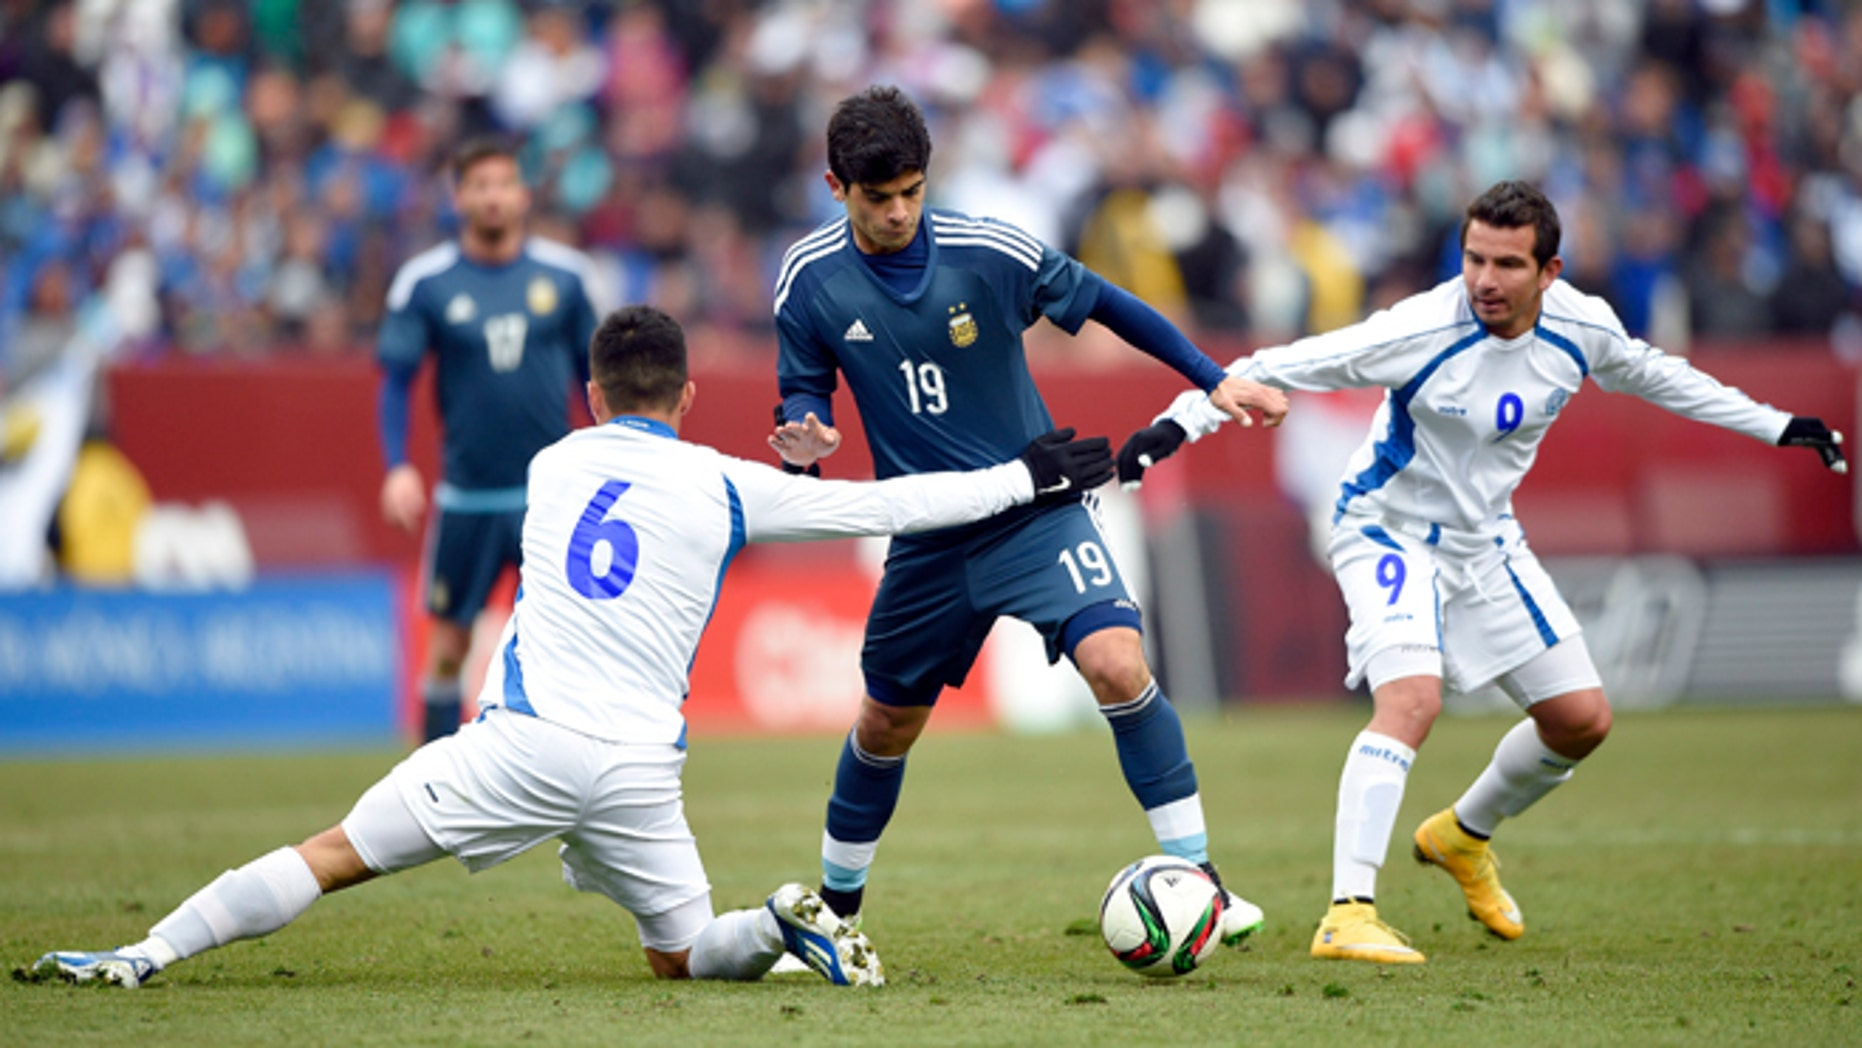 Argentina's Ever Banega battles for the ball against El Salvador's Richard Menjivar and Rafael Burgos, March 28, 2015.